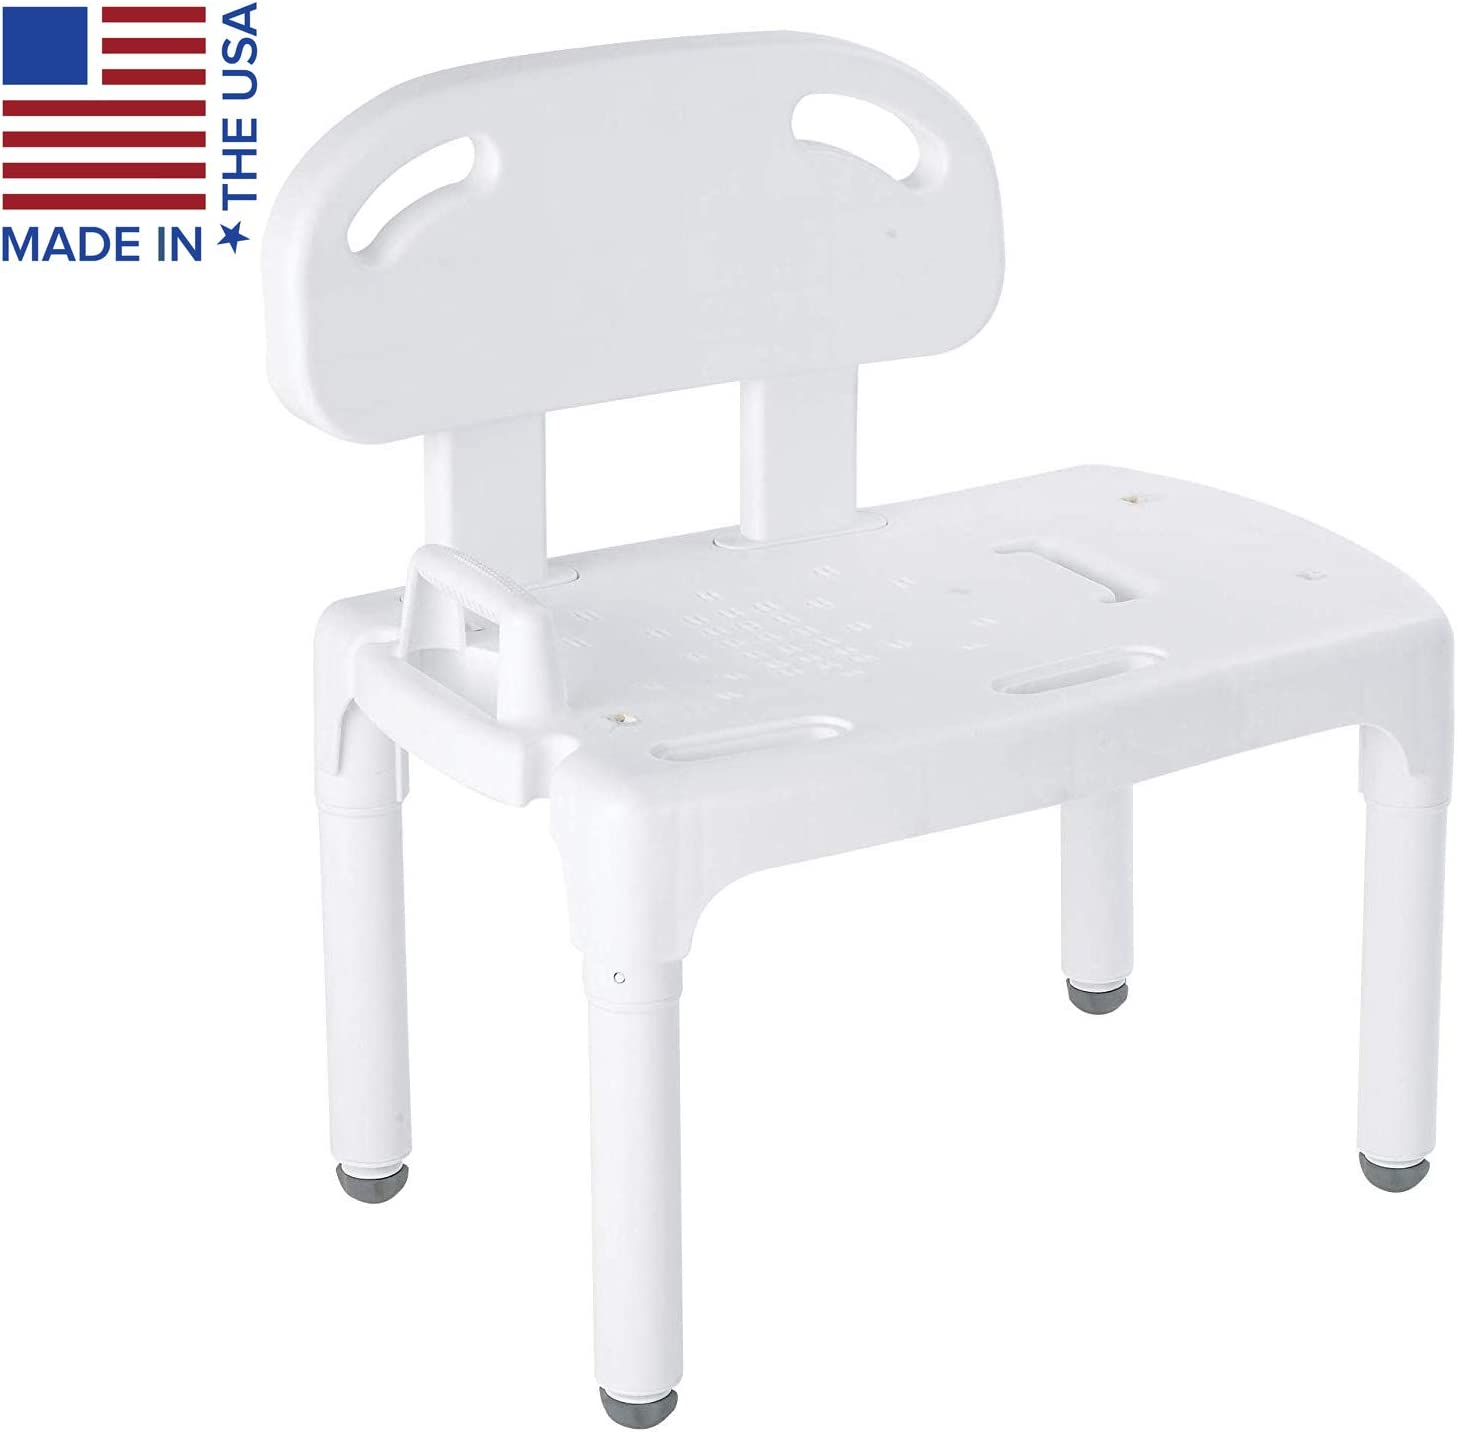 Carex Health Brands Universal Tub Transfer Bench - Shower Bench and Bath Seat - Chair Converts to Right or Left Hand Entry 61dYo7DjxpLSL1500_